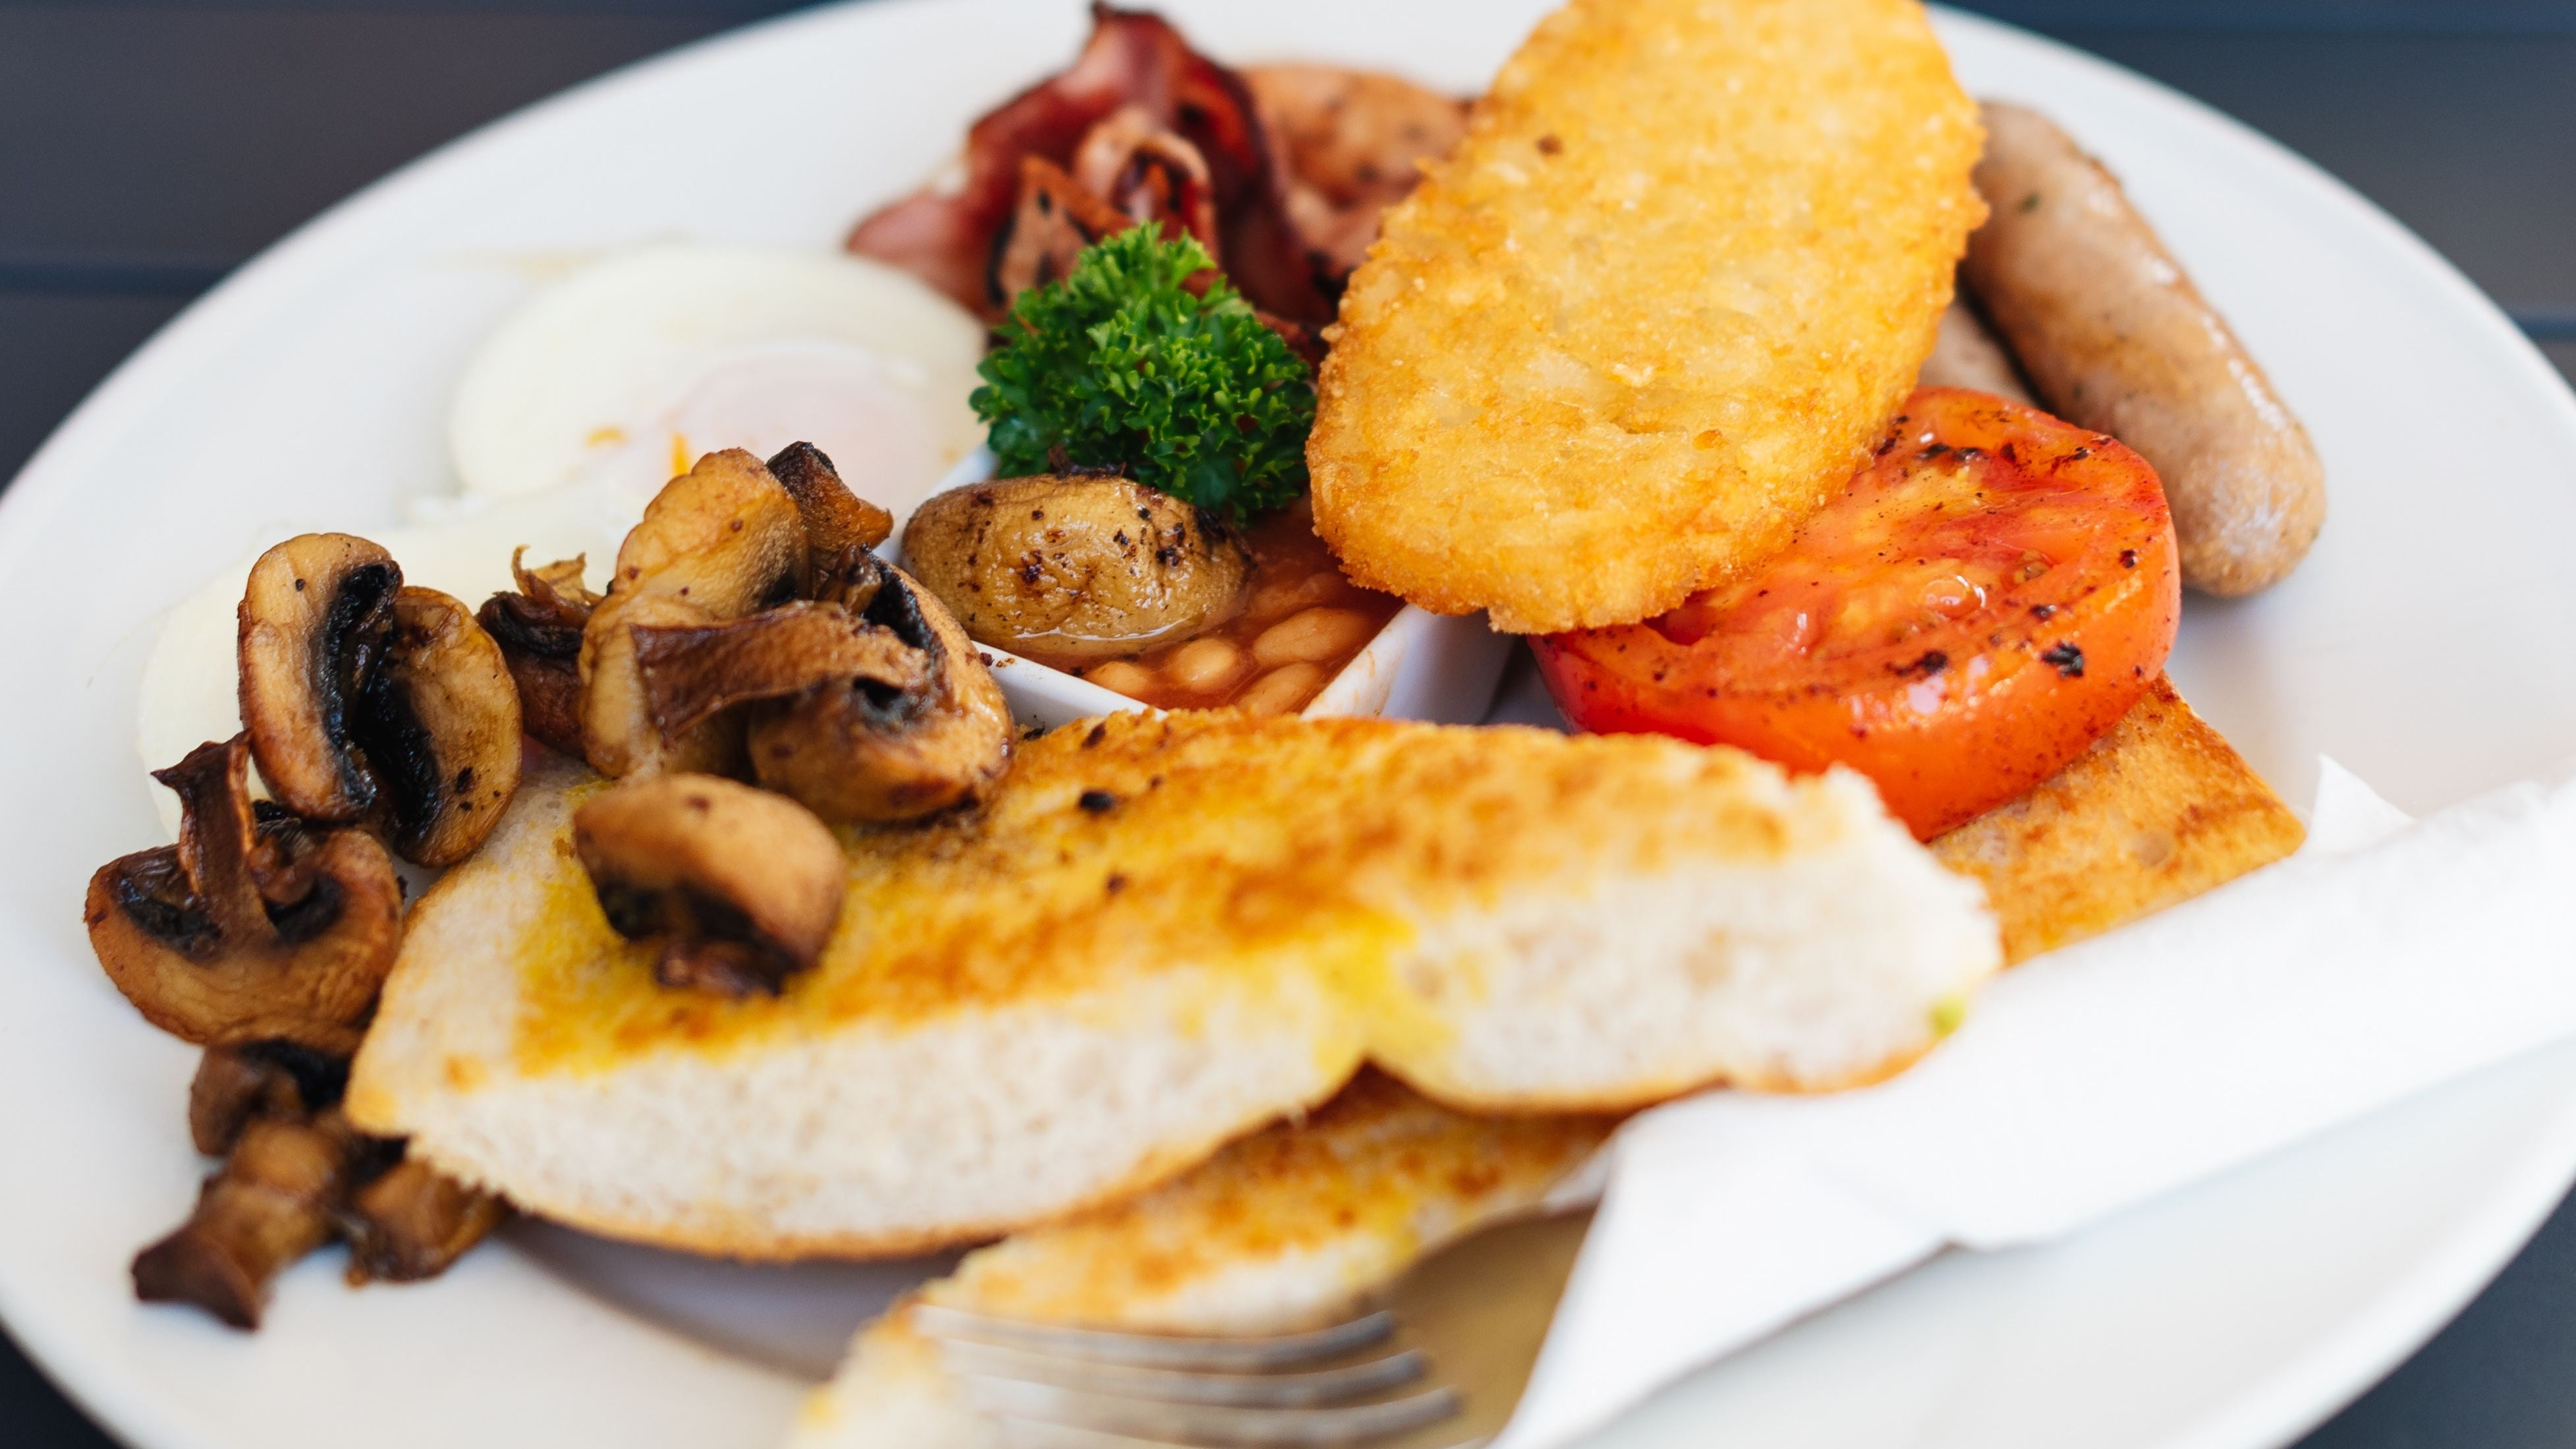 How To Quickly Make A 'Full English' Breakfast